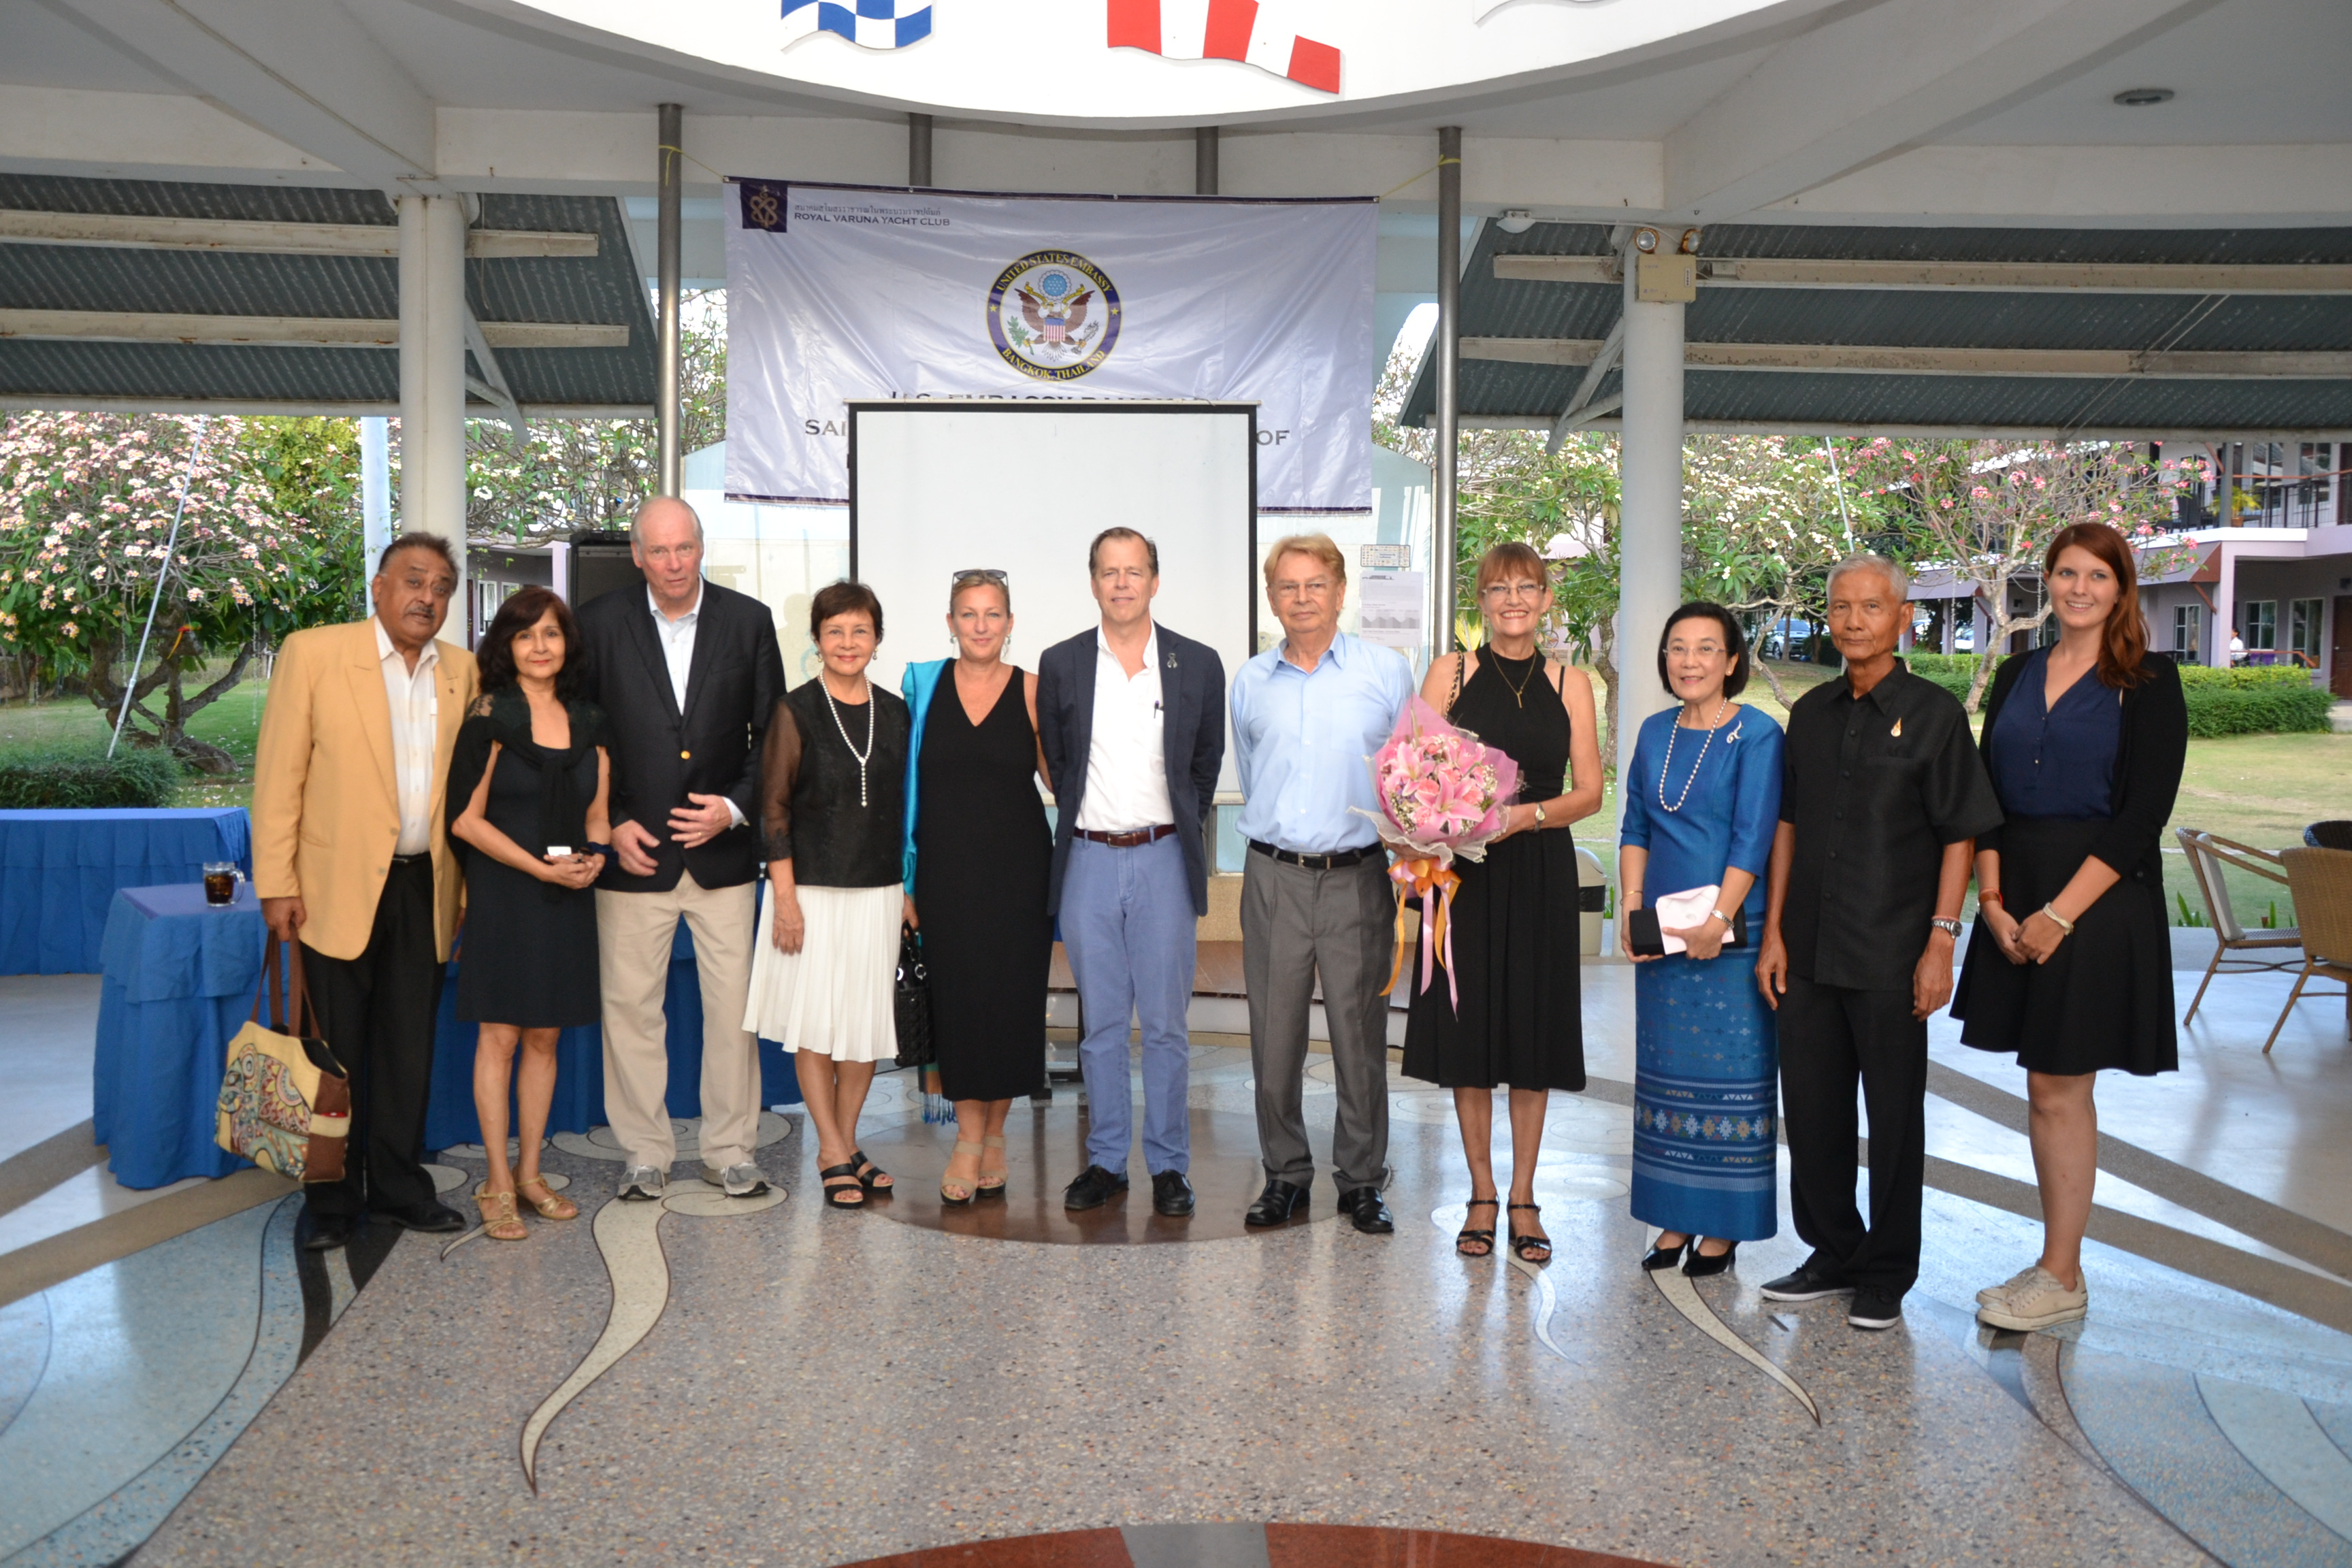 Ambassador Davies, Jackie and Gary Jobson pose for photos with community leaders.